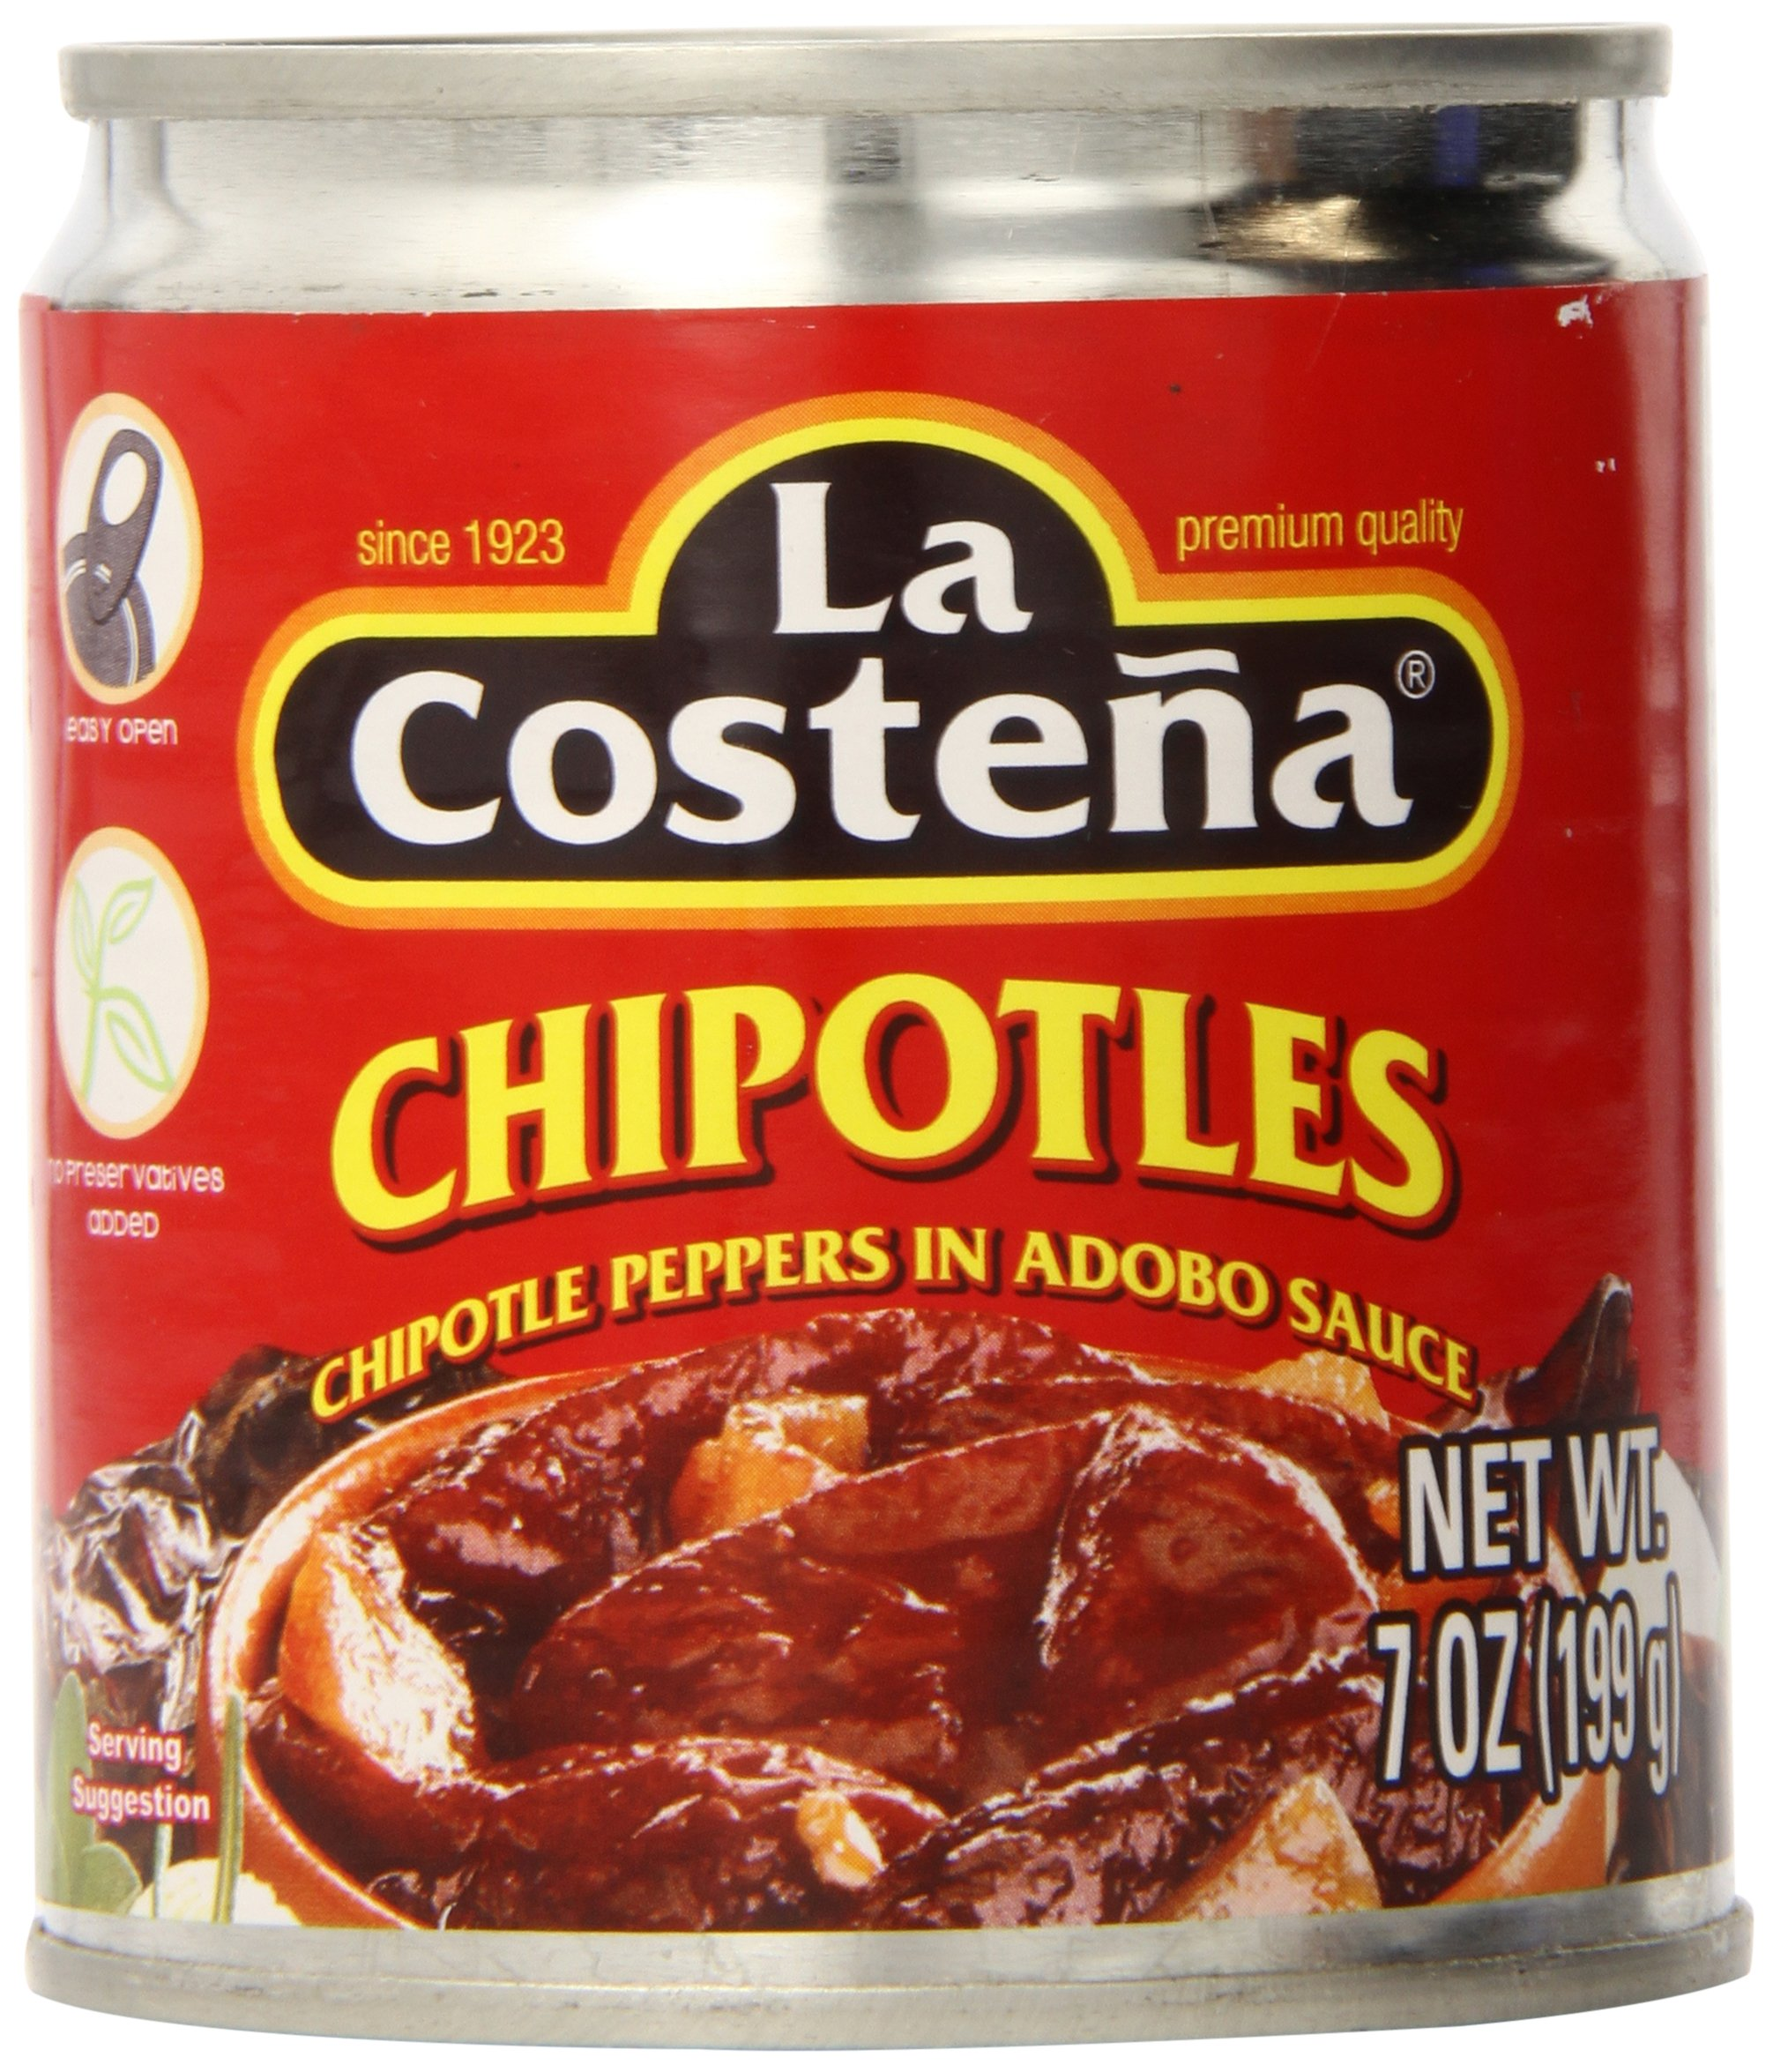 La Costena Chipotle Peppers, 7 Ounce (Pack of 24)